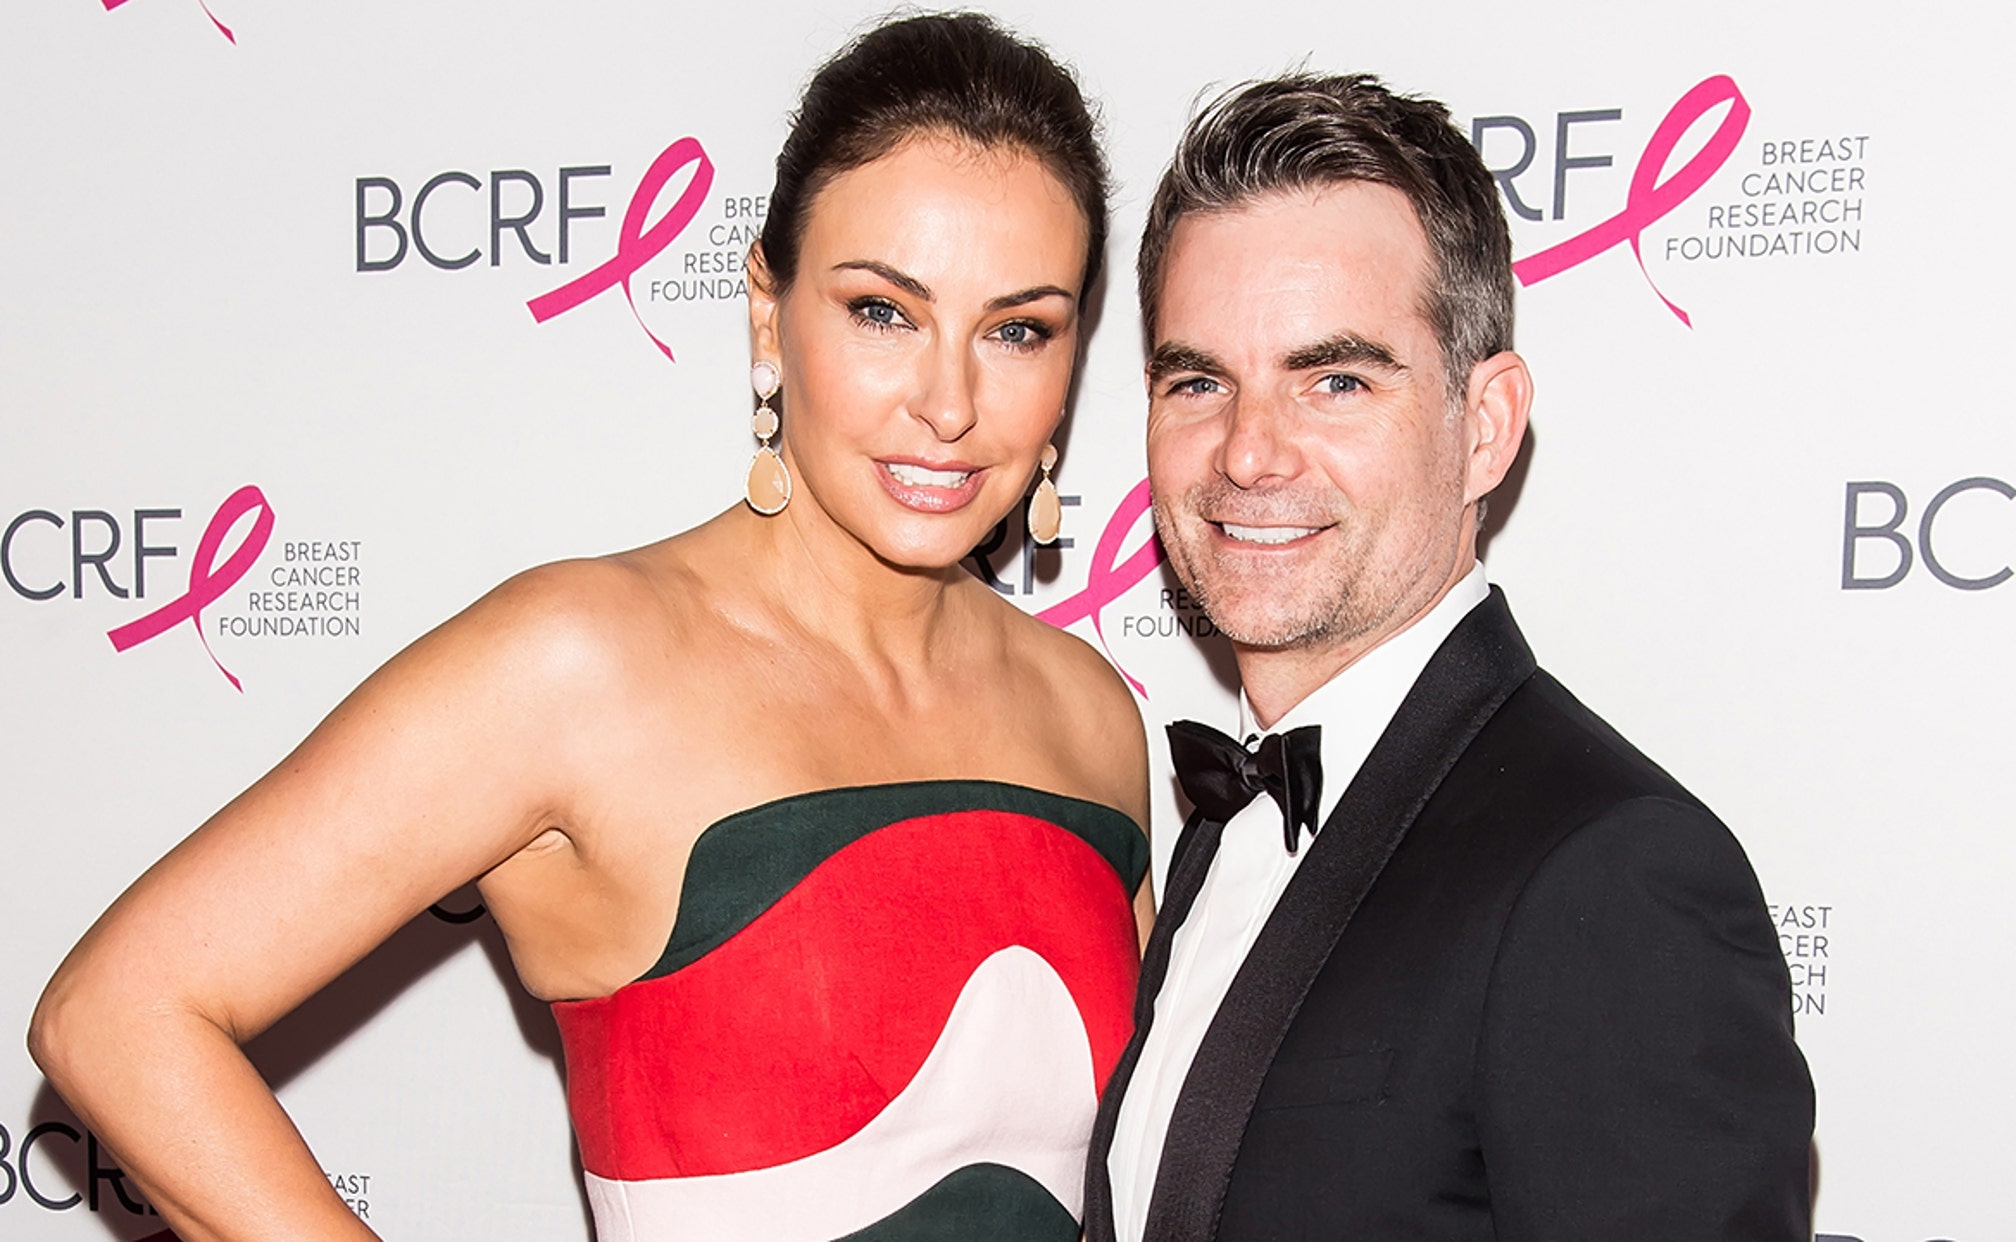 Jeff Gordon And Wife Attend Gala In Nyc For Good Cause Fox Sports